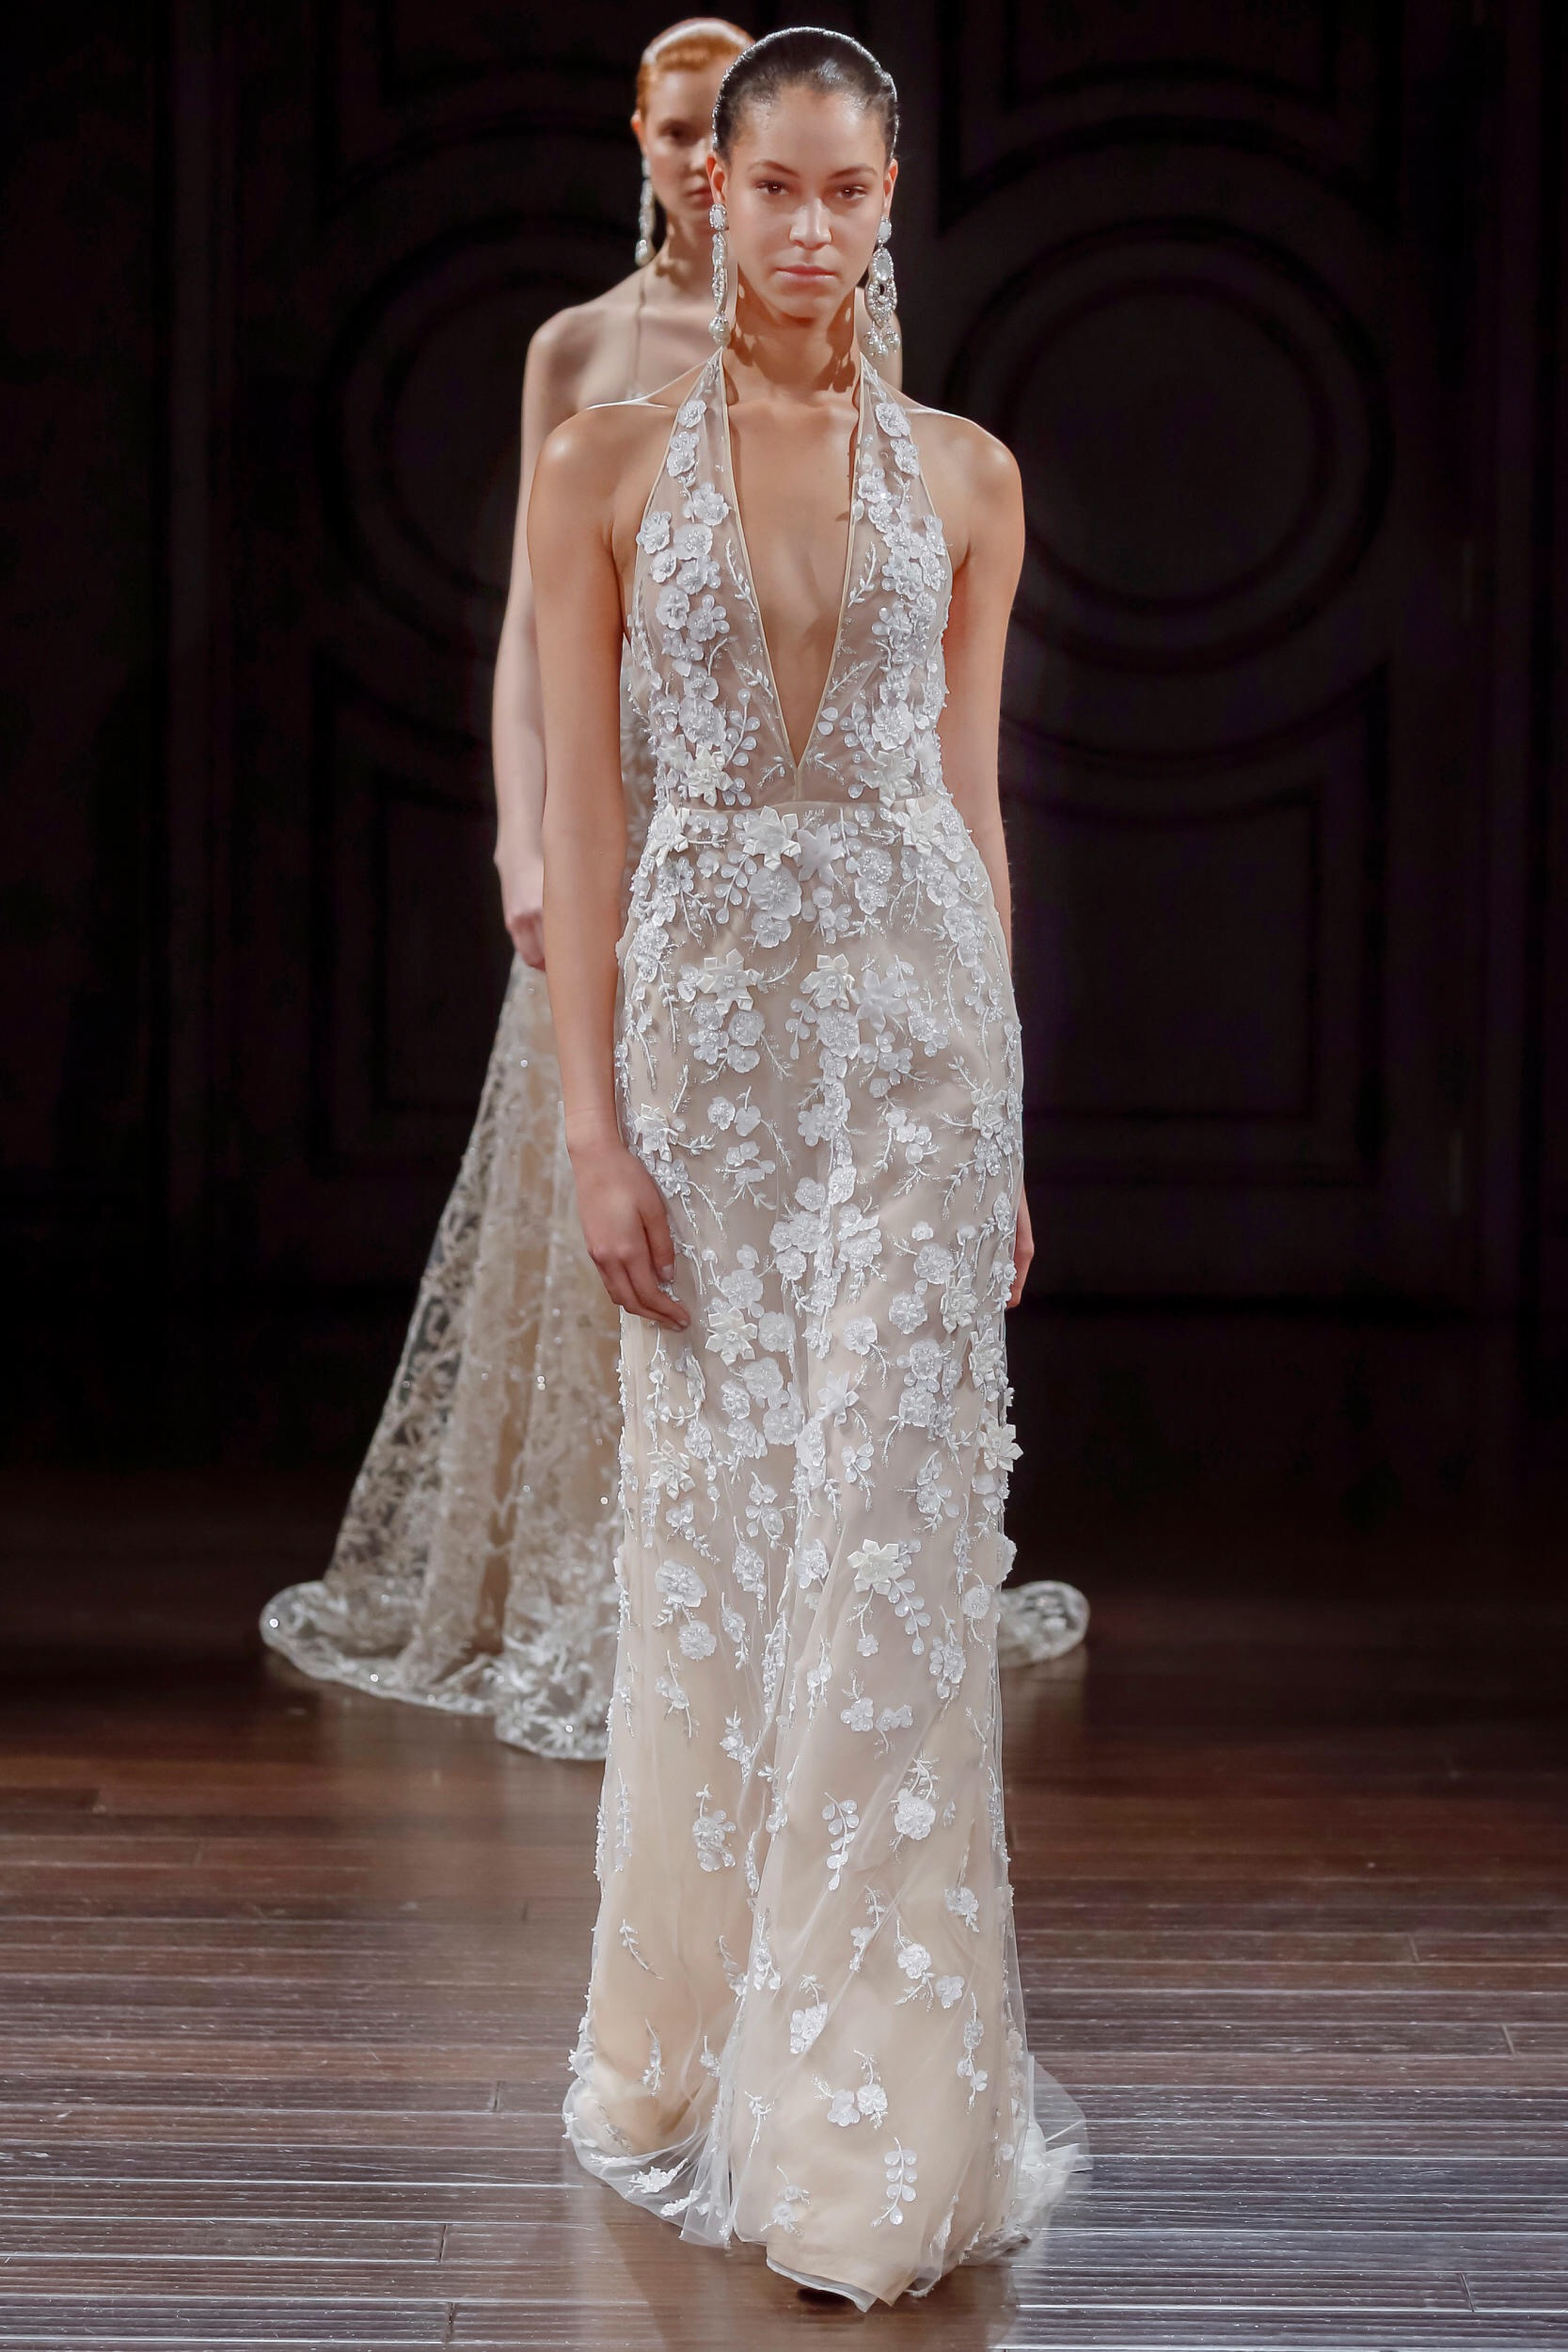 @projectfairytale: The Main Bridal Trends of Spring 2017